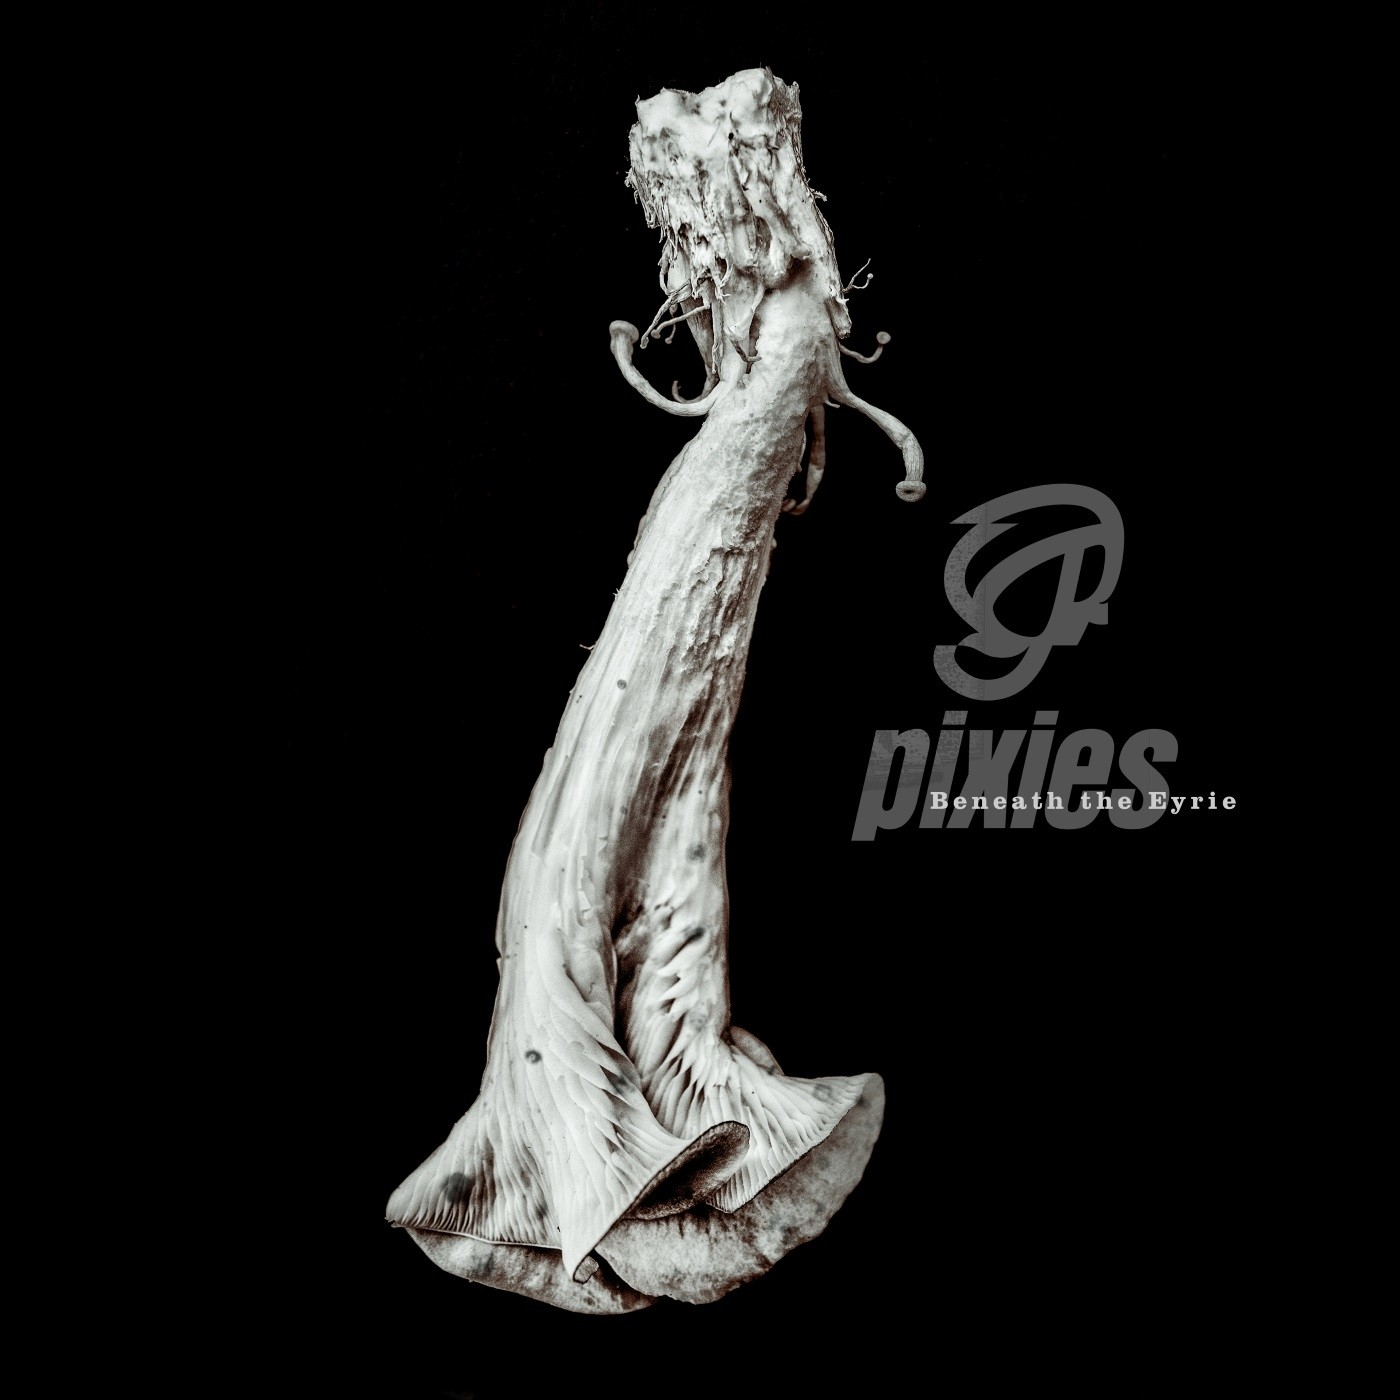 Pixies - Beneath The Eyrie (Deluxe Edition) - CD